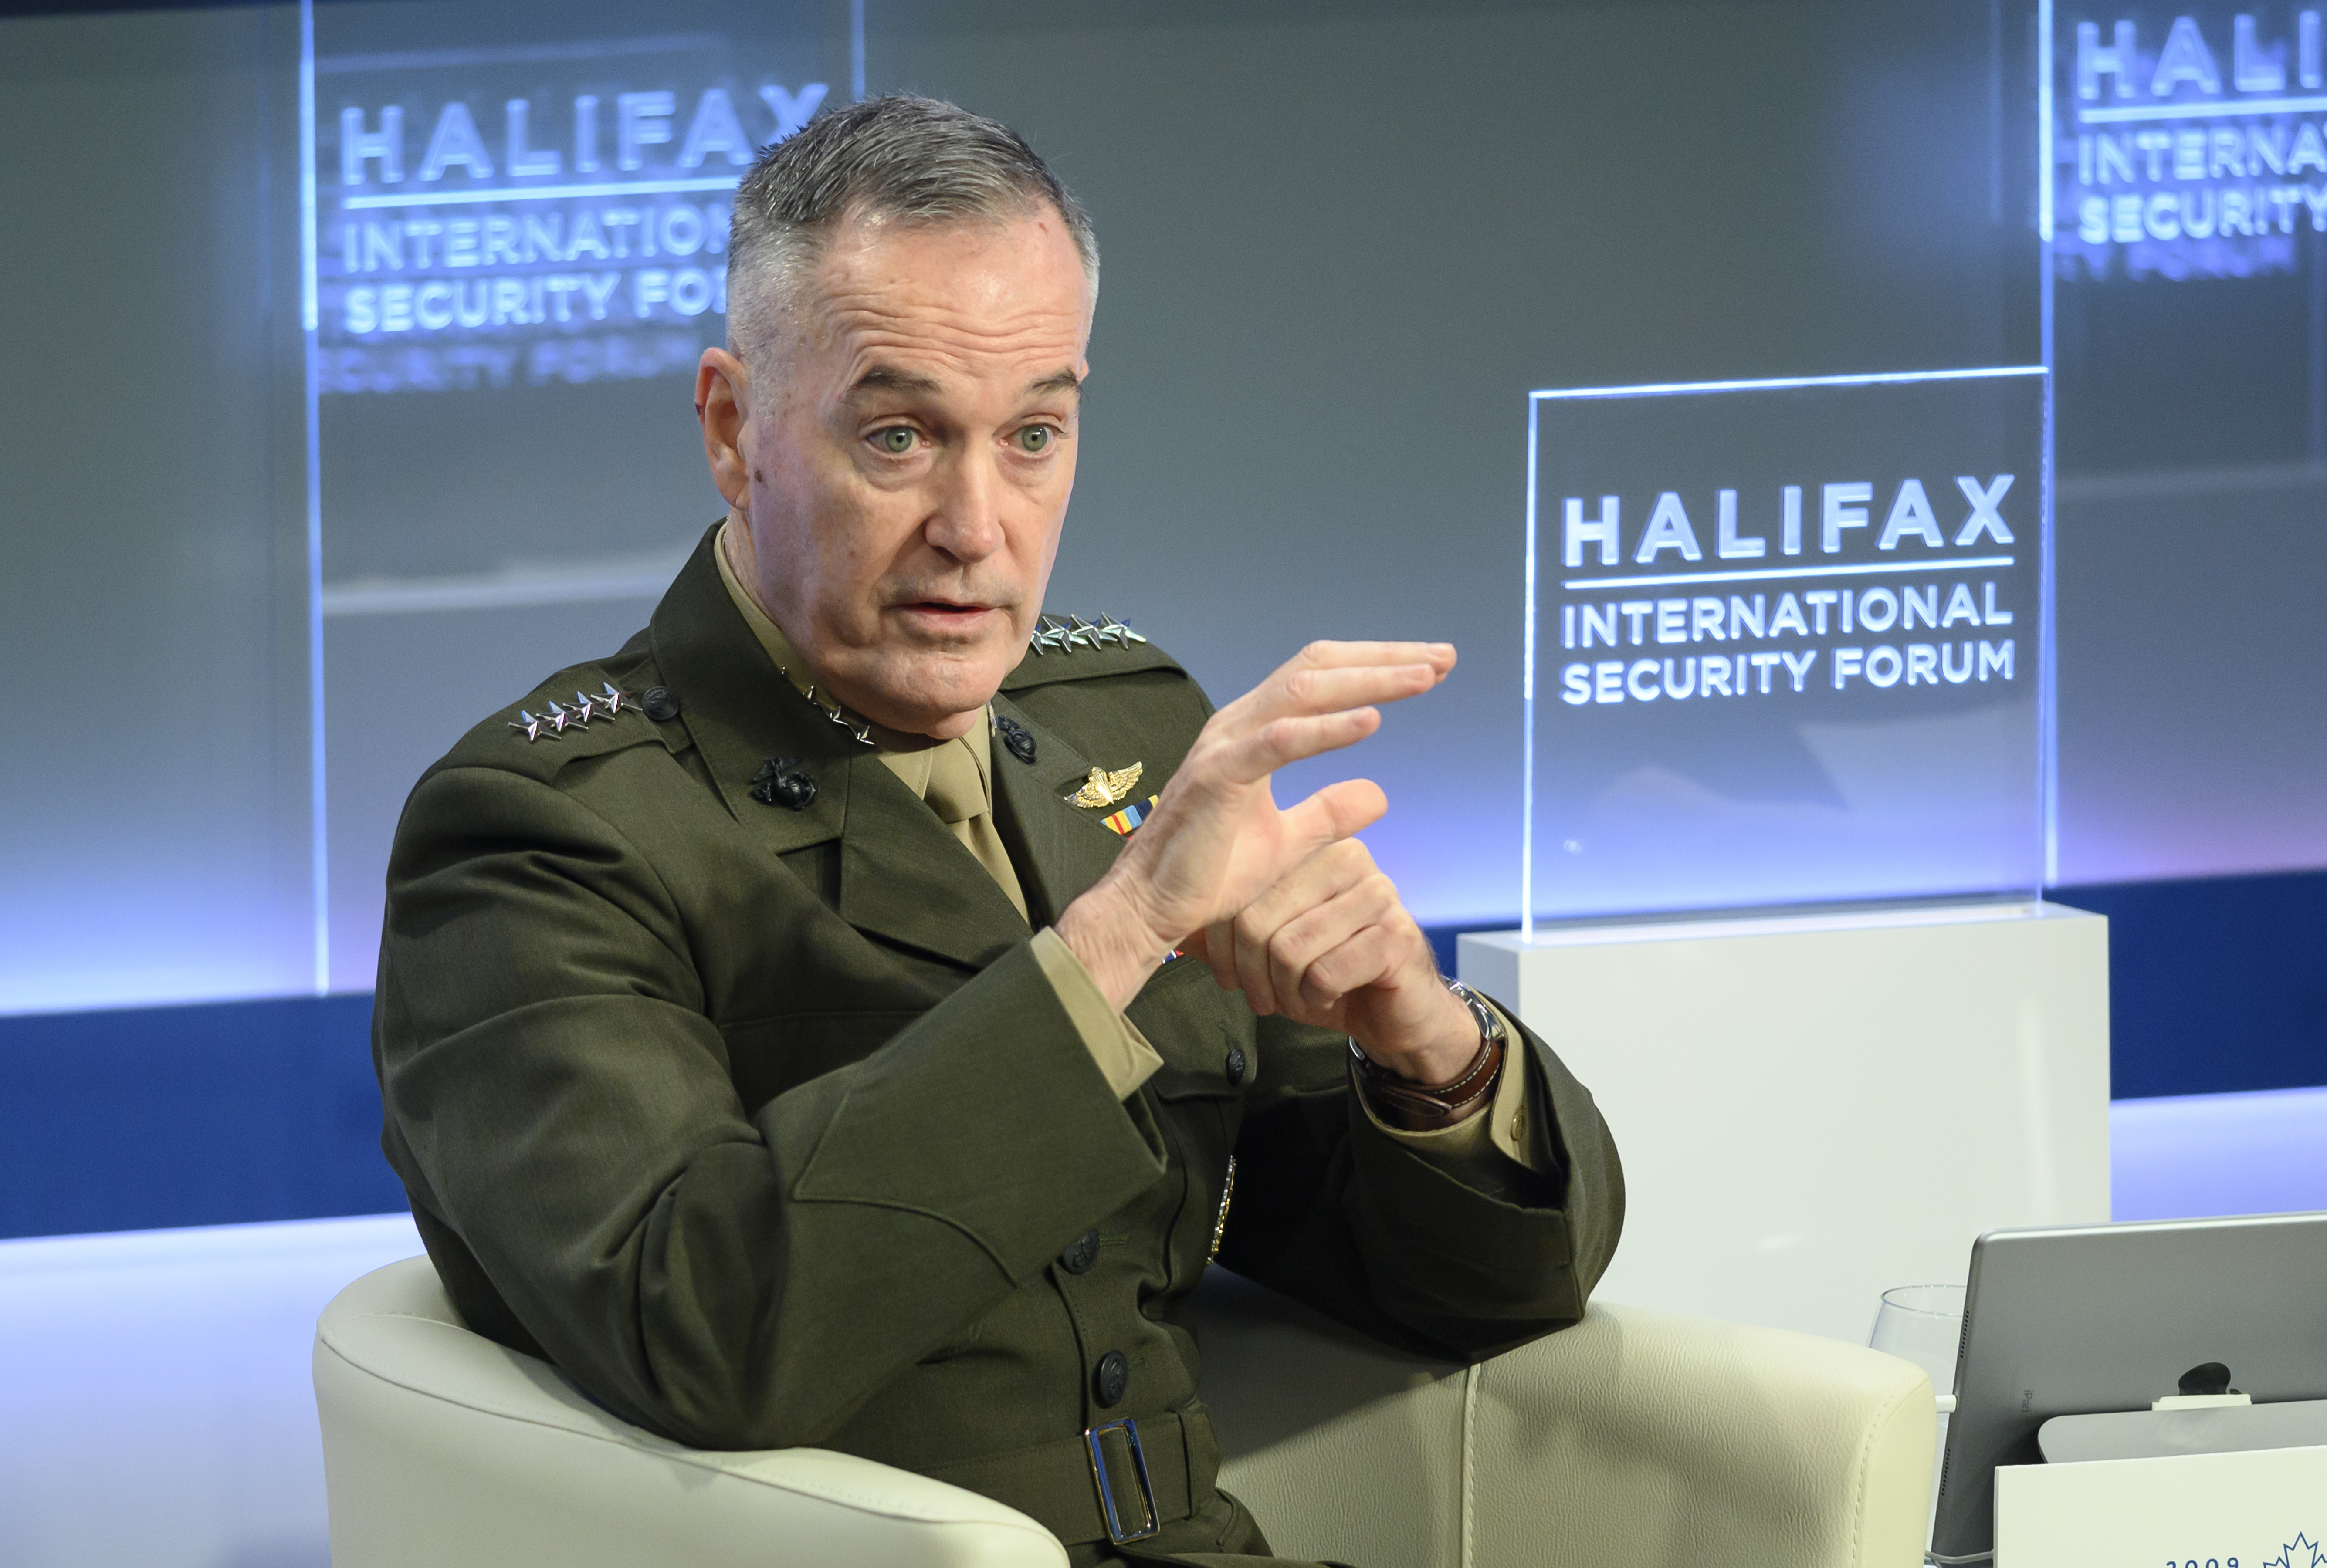 U.S. Chairman of the Joint Chiefs of Staff Joseph Dunford speaks at the Halifax International Security Forum in Halifax on Saturday, Nov. 17, 2018. Dunford says it's problematic that American tech companies don't want to work with the Pentagon but are willing to engage with the Chinese market. (Darren Calabrese /The Canadian Press via AP)